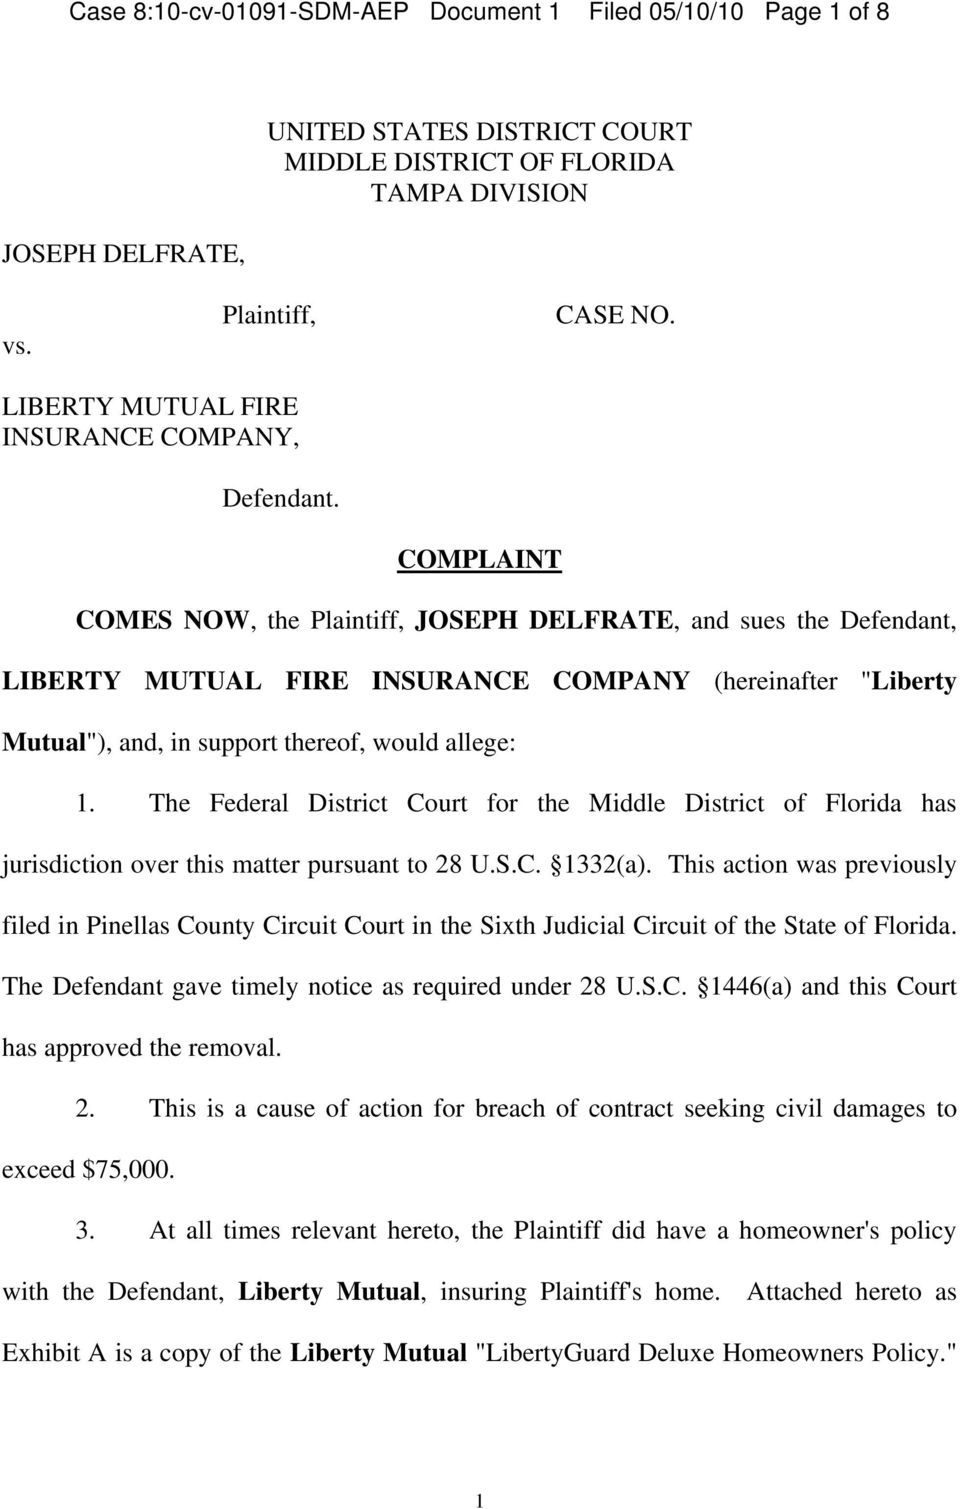 "COMPLAINT COMES NOW, the Plaintiff, JOSEPH DELFRATE, and sues the Defendant, LIBERTY MUTUAL FIRE INSURANCE COMPANY (hereinafter ""Liberty Mutual""), and, in support thereof, would allege: 1."